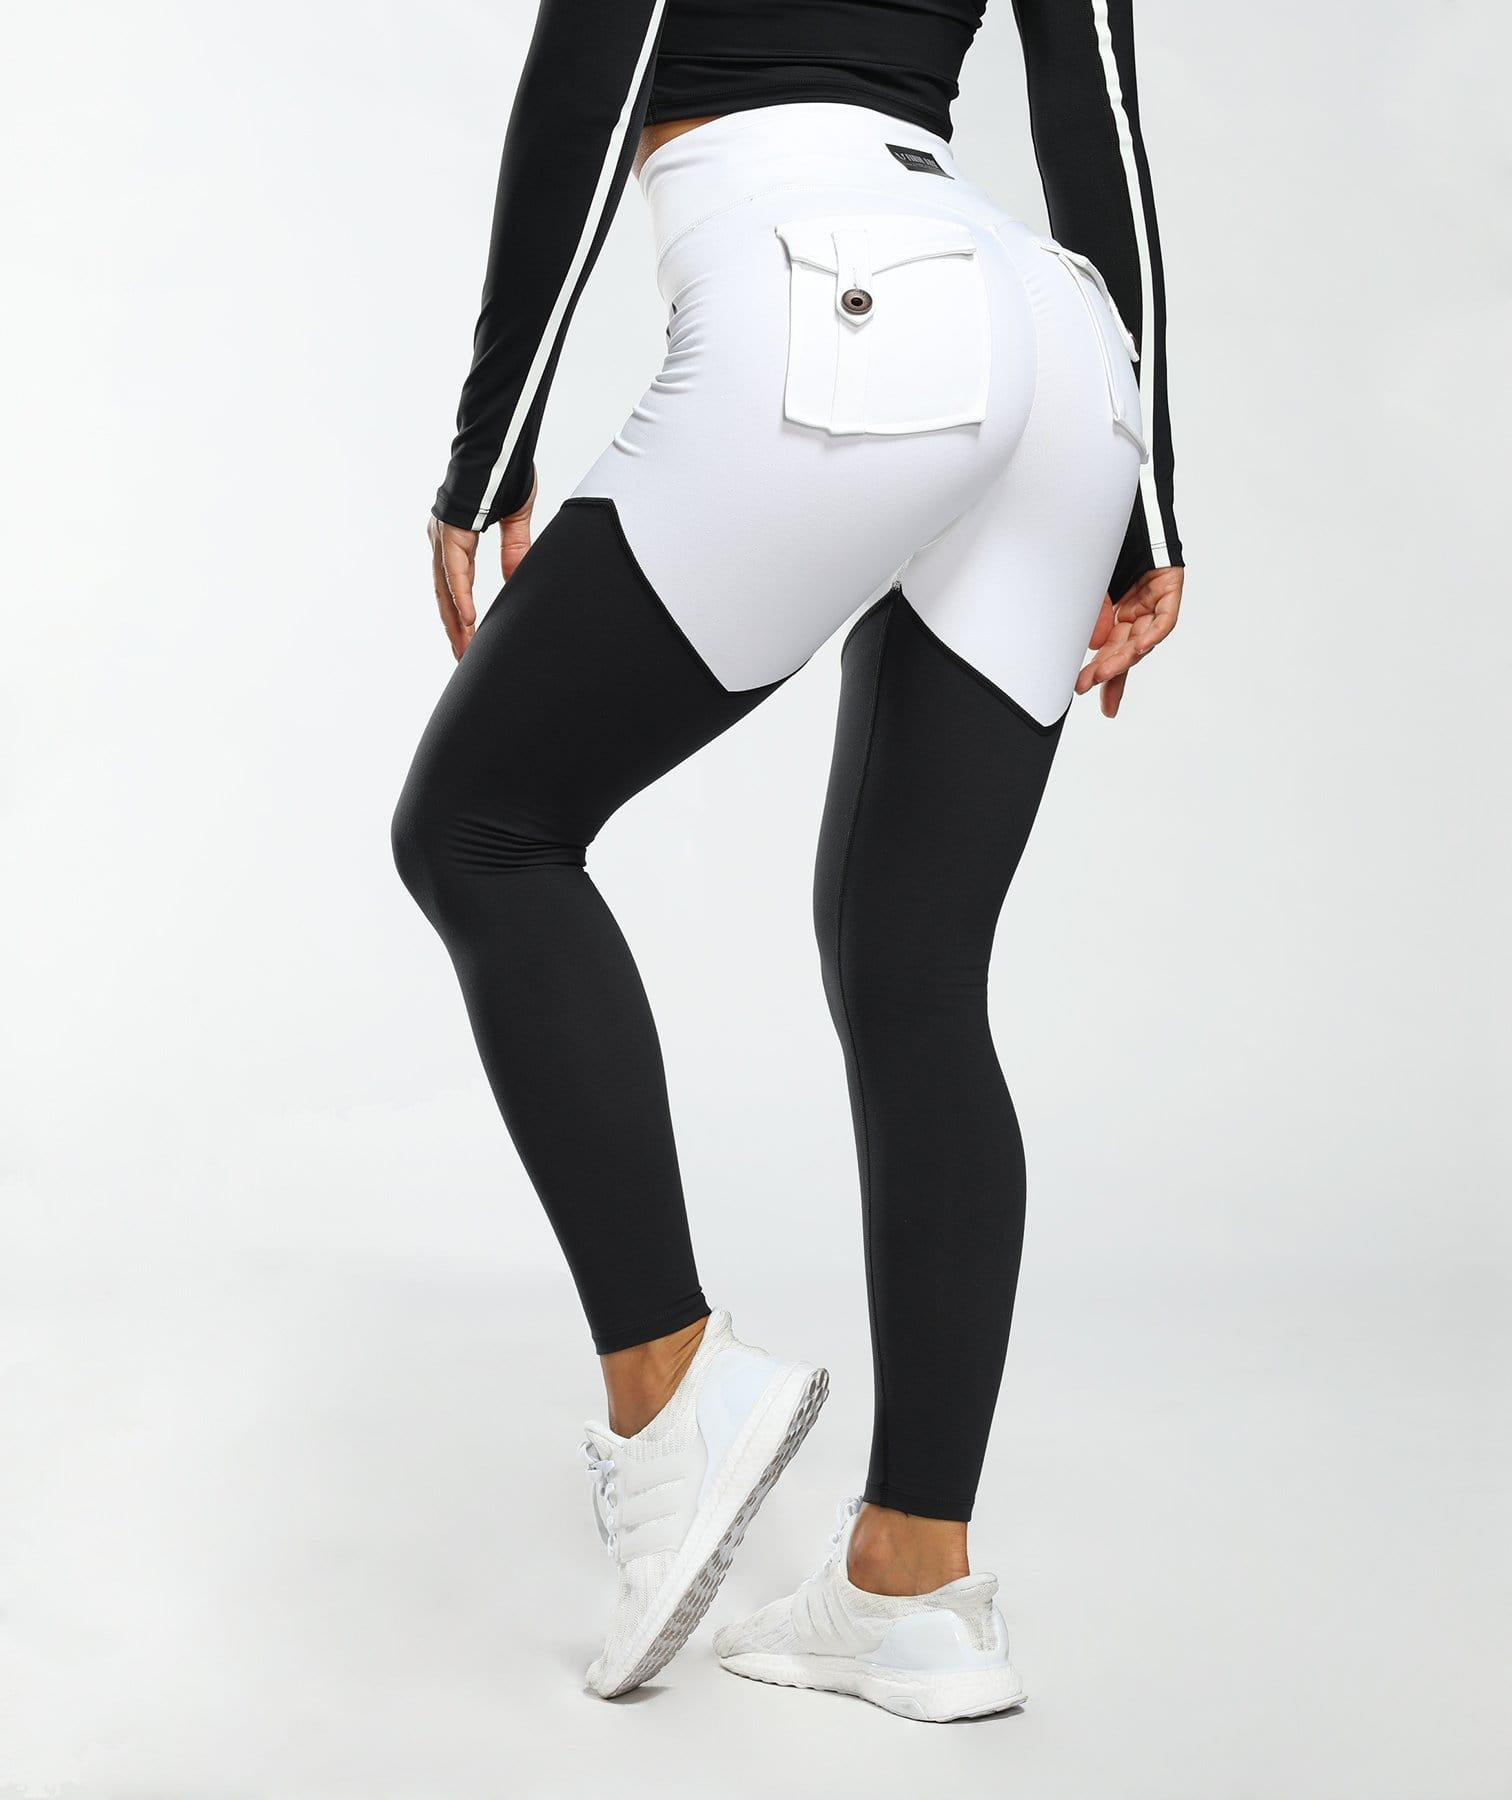 Cargo Power Leggings - Black and White - Firm Abs Fitness